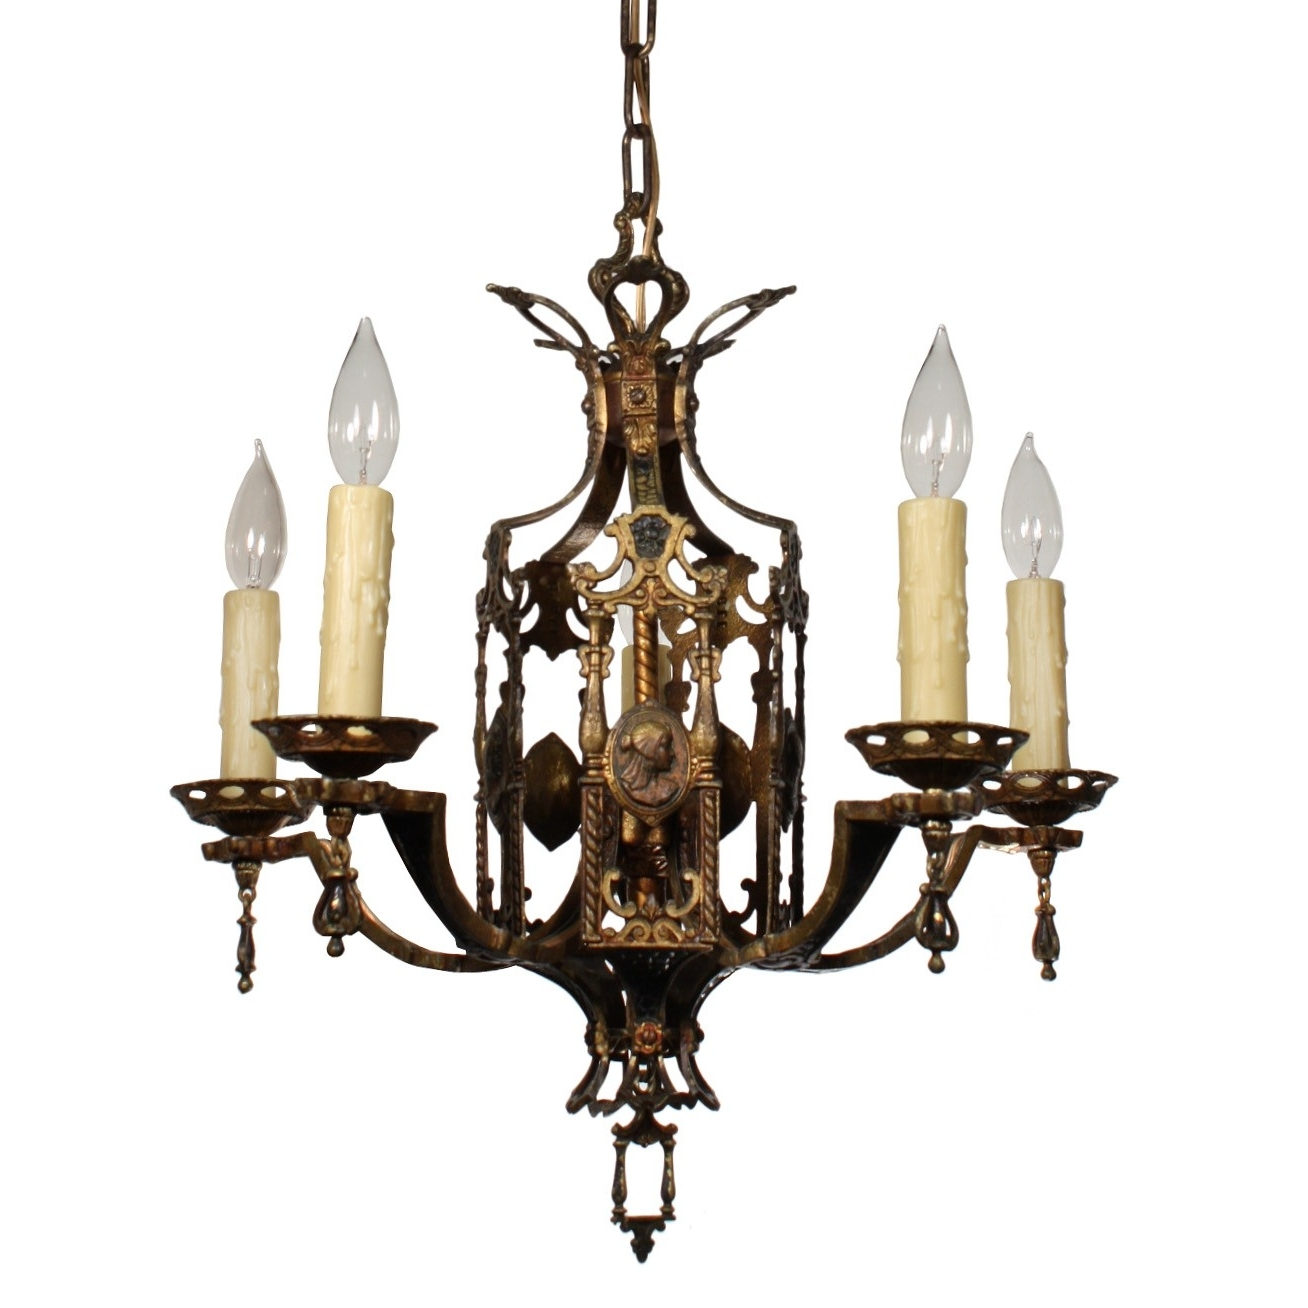 Stunning Antique Egyptian Revival Figural Chandelier With Cameos, C With Regard To Most Recent Egyptian Chandelier (View 3 of 20)